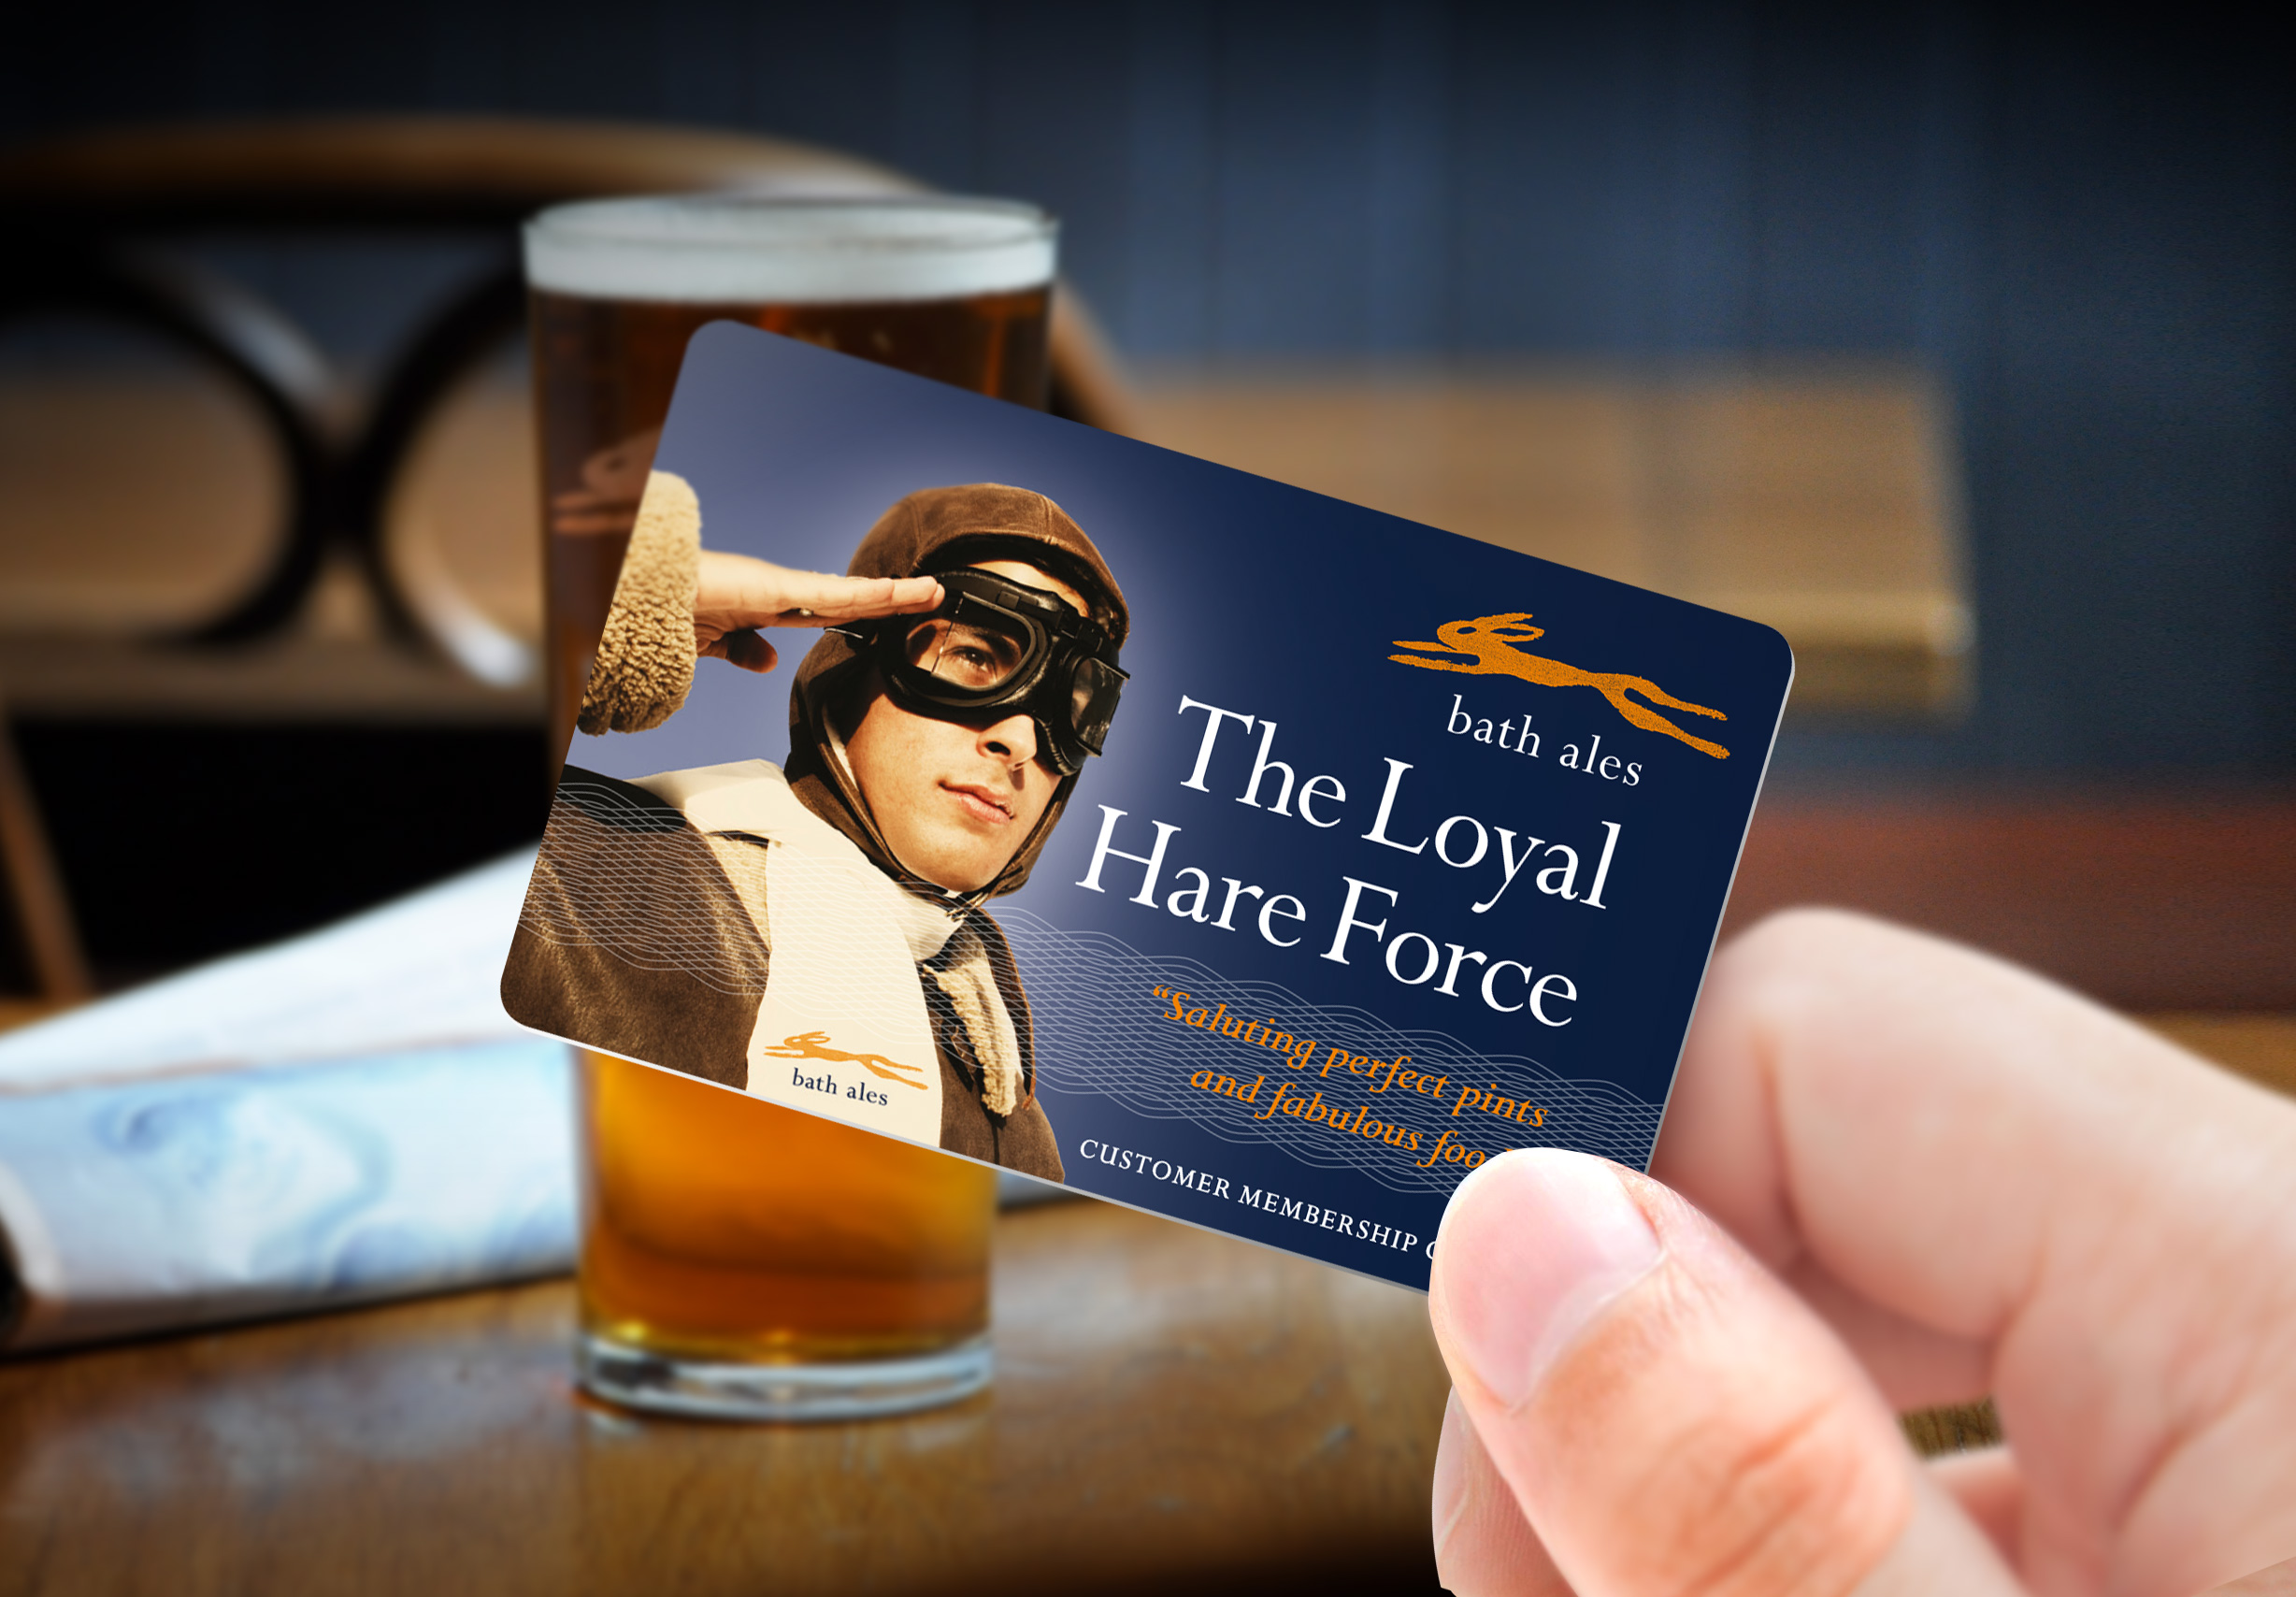 Bath Ales Loyal Hare Force branding